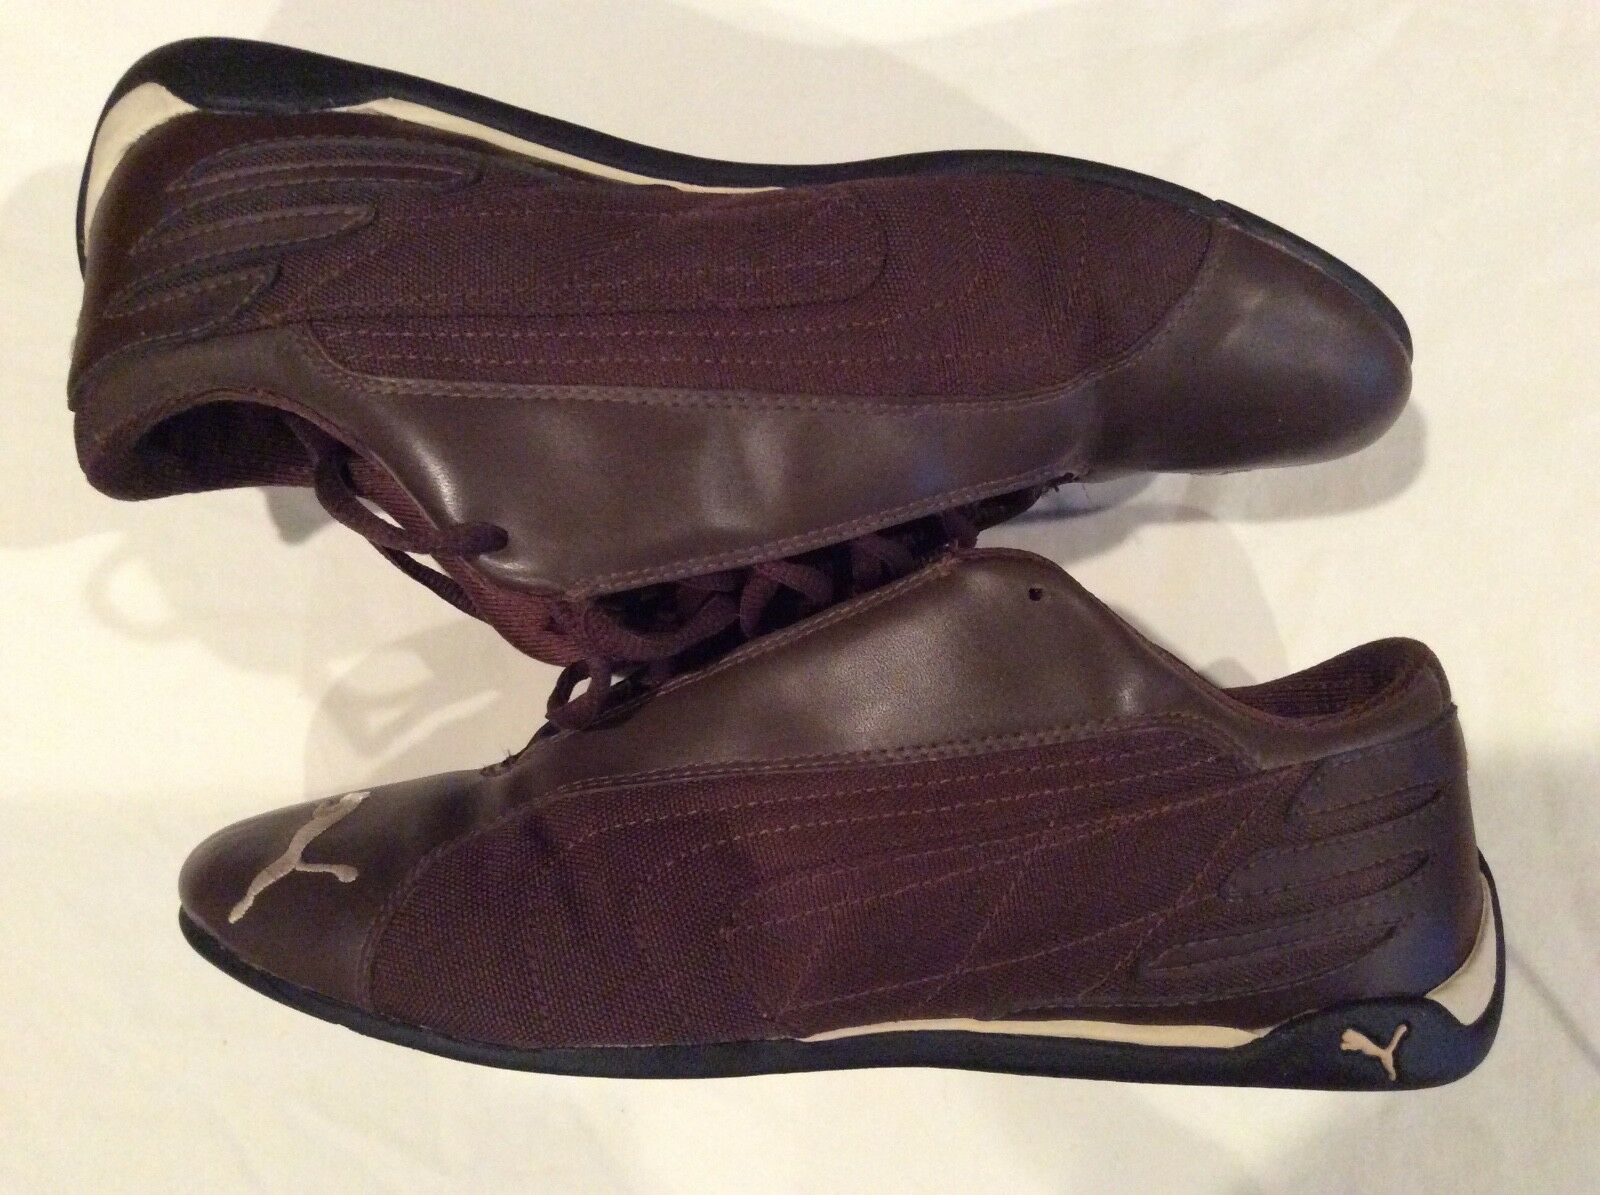 Puma Men's Brown Canvas Leather Soccer Athletic shoes, size 9